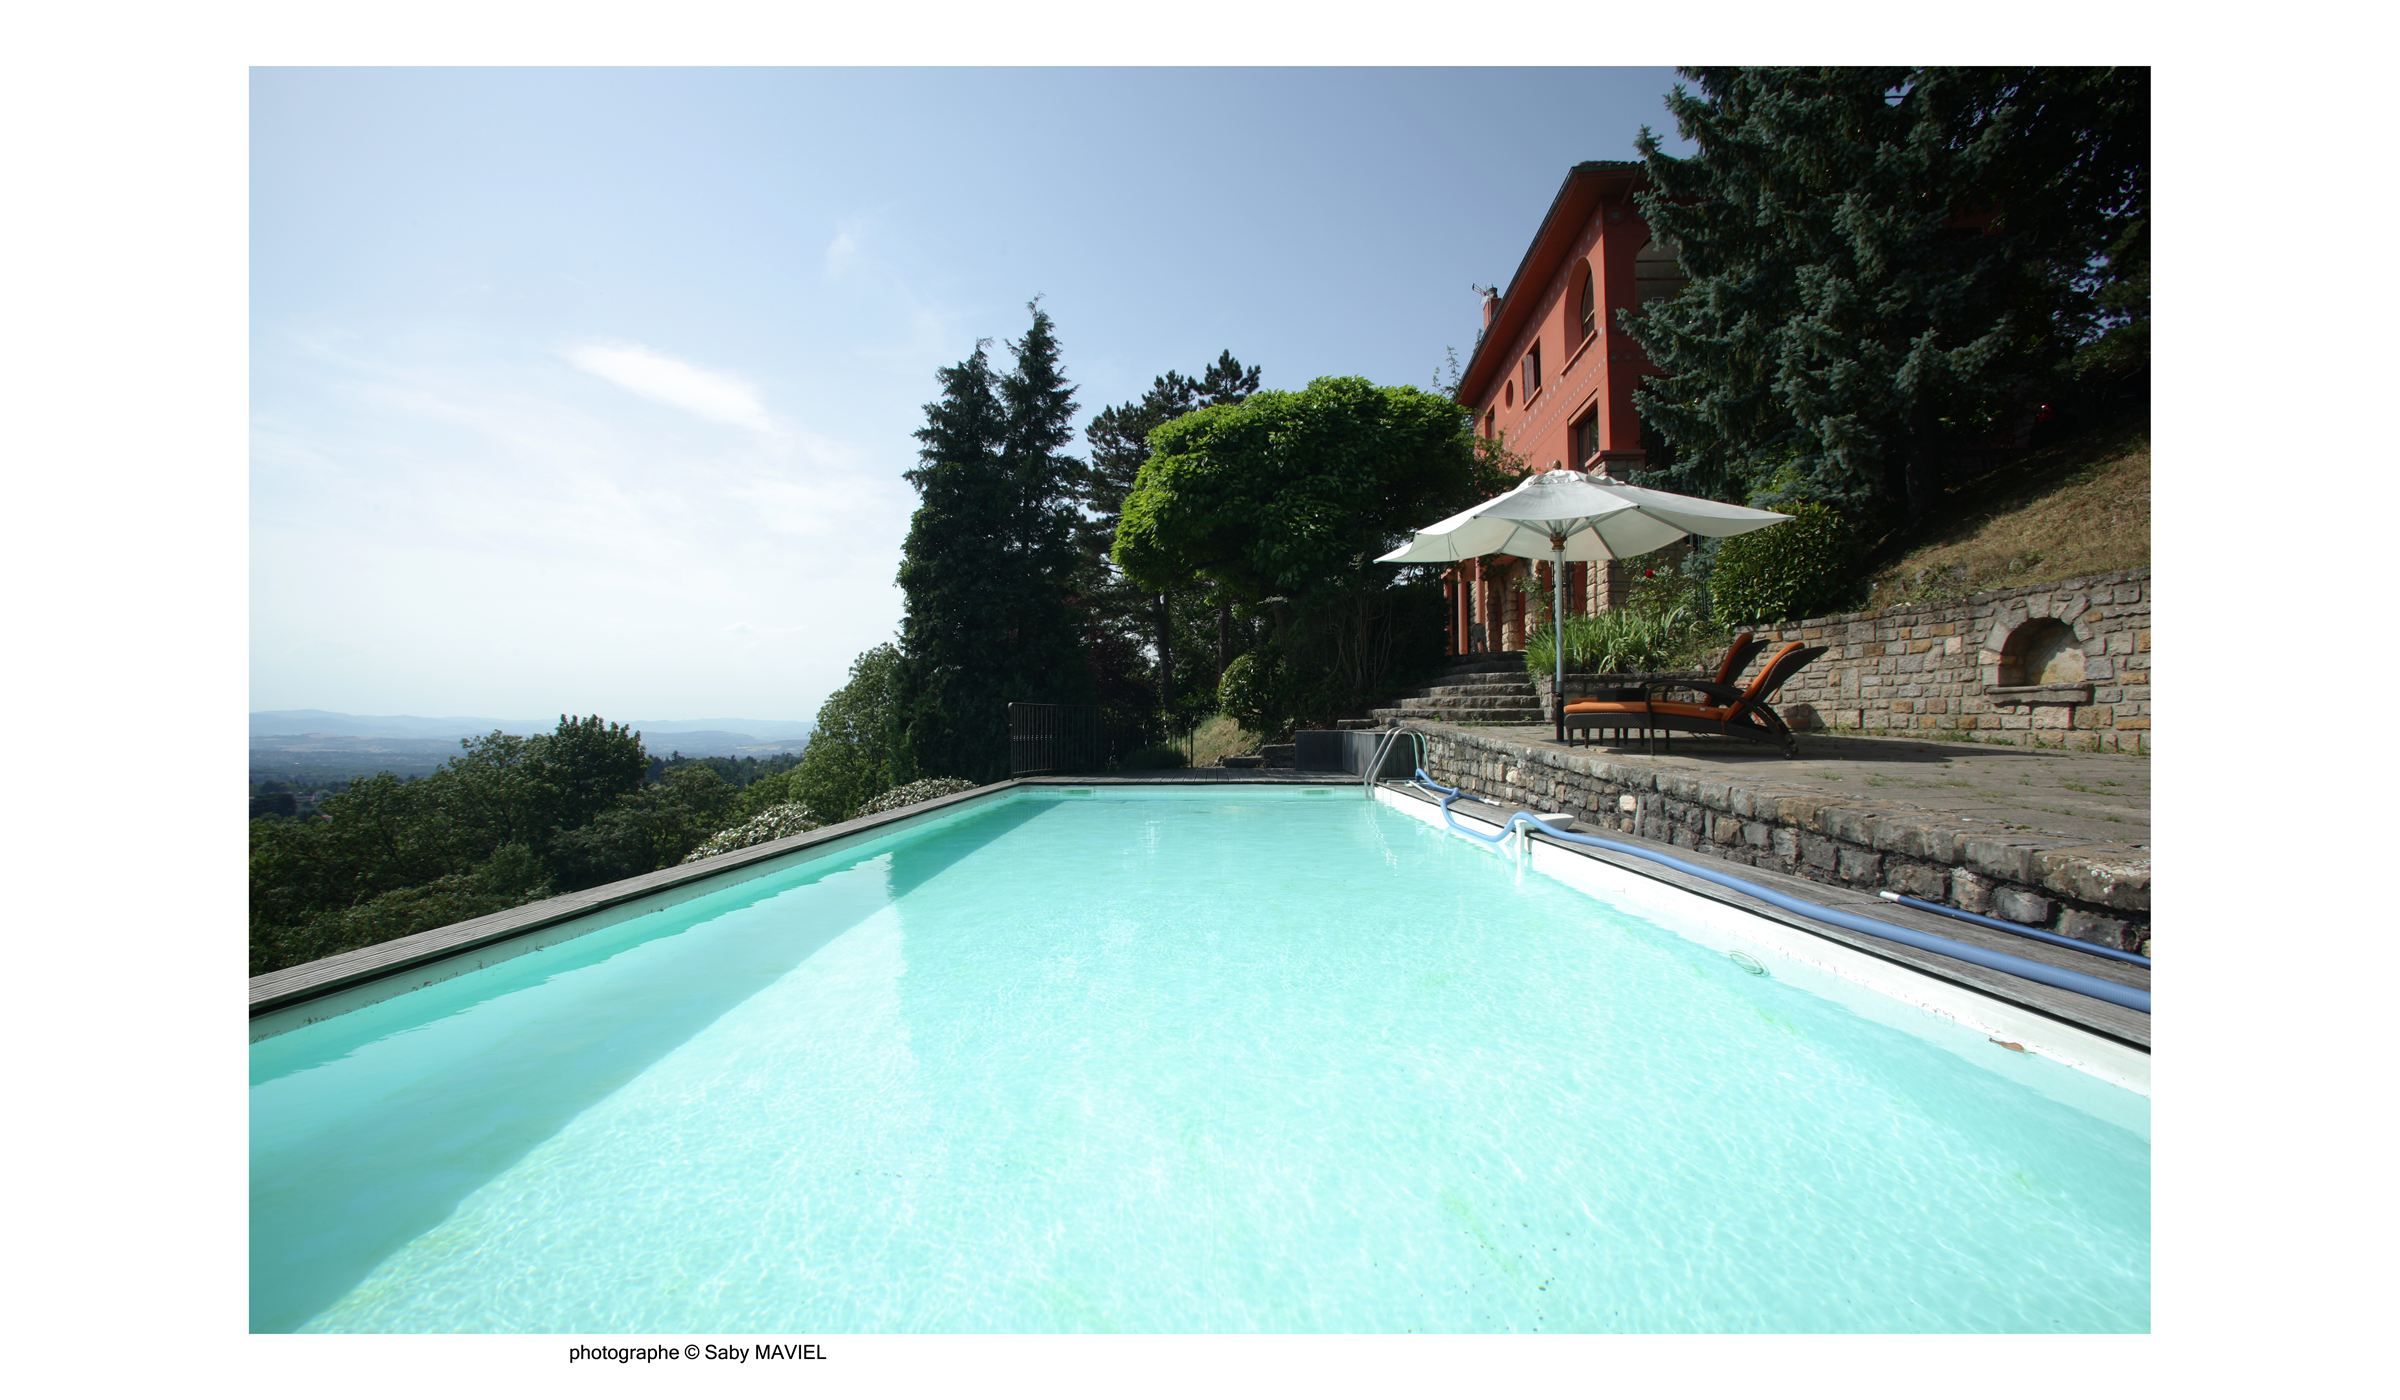 Property For Sale at SAINT DIDIER AU MONT D'OR - BELLE MAISON AVEC VUE IMPRENABLE